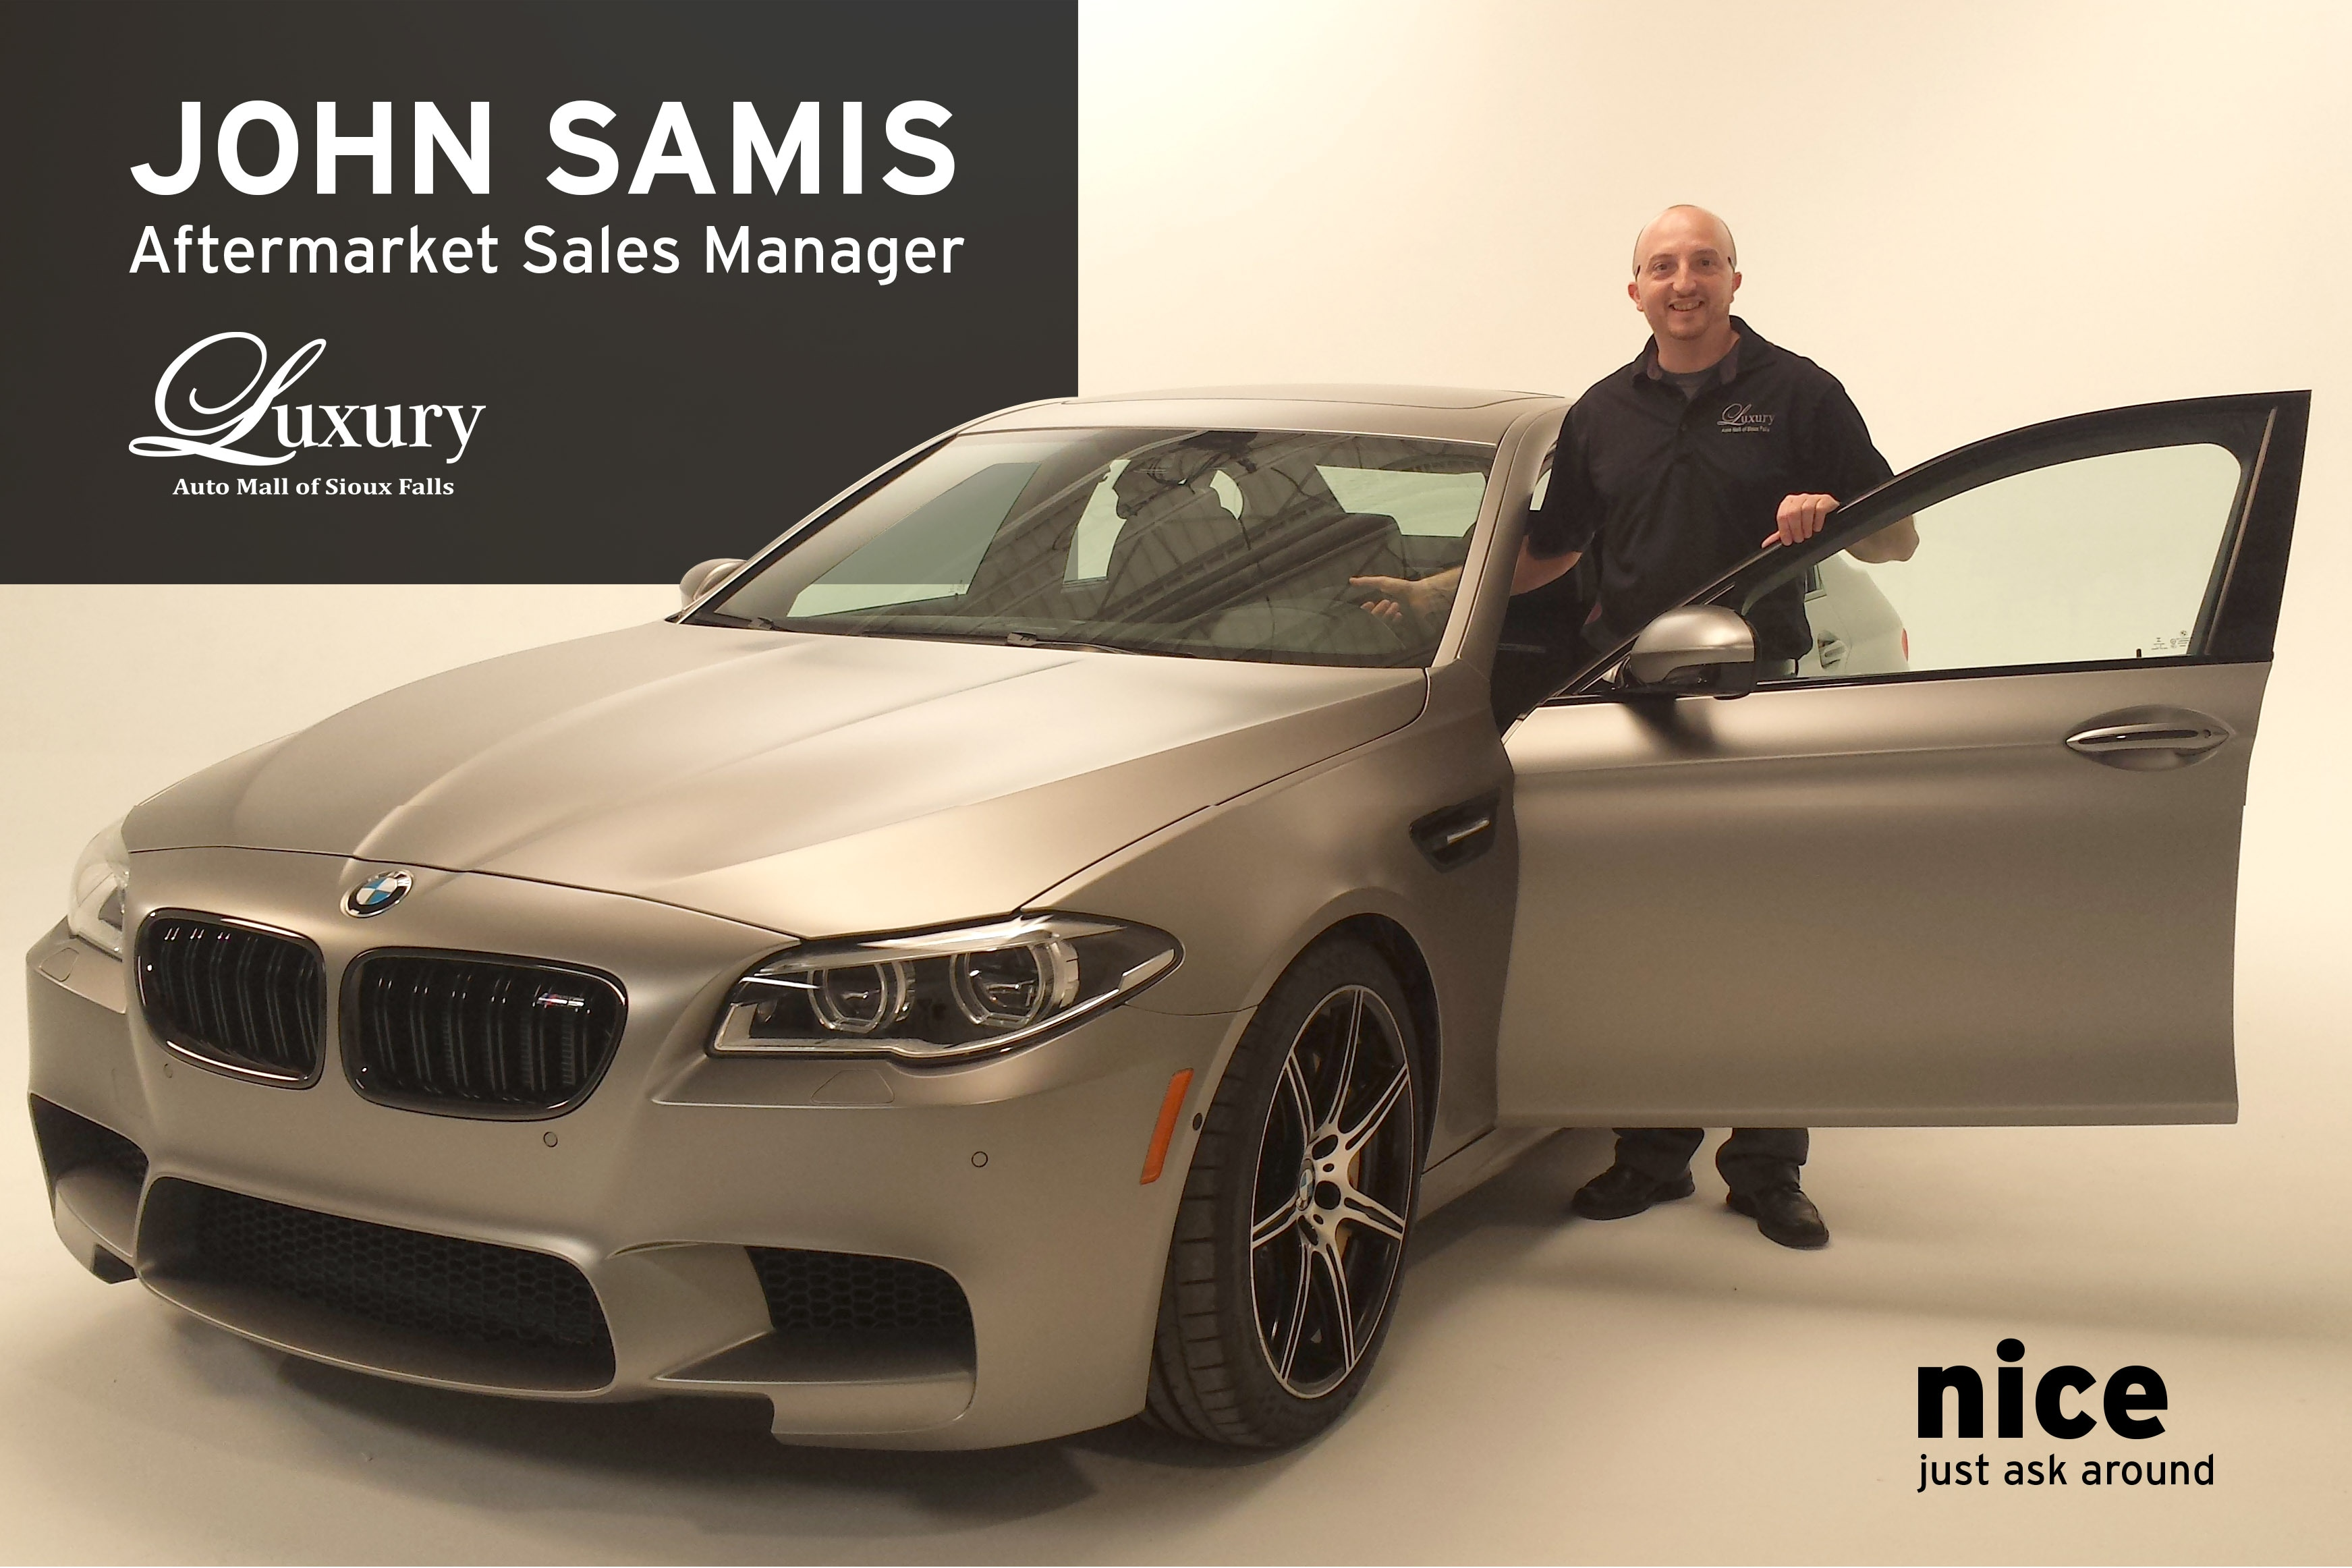 Meet Us Monday John Samis Aftermarket Sales Manager at the Luxury